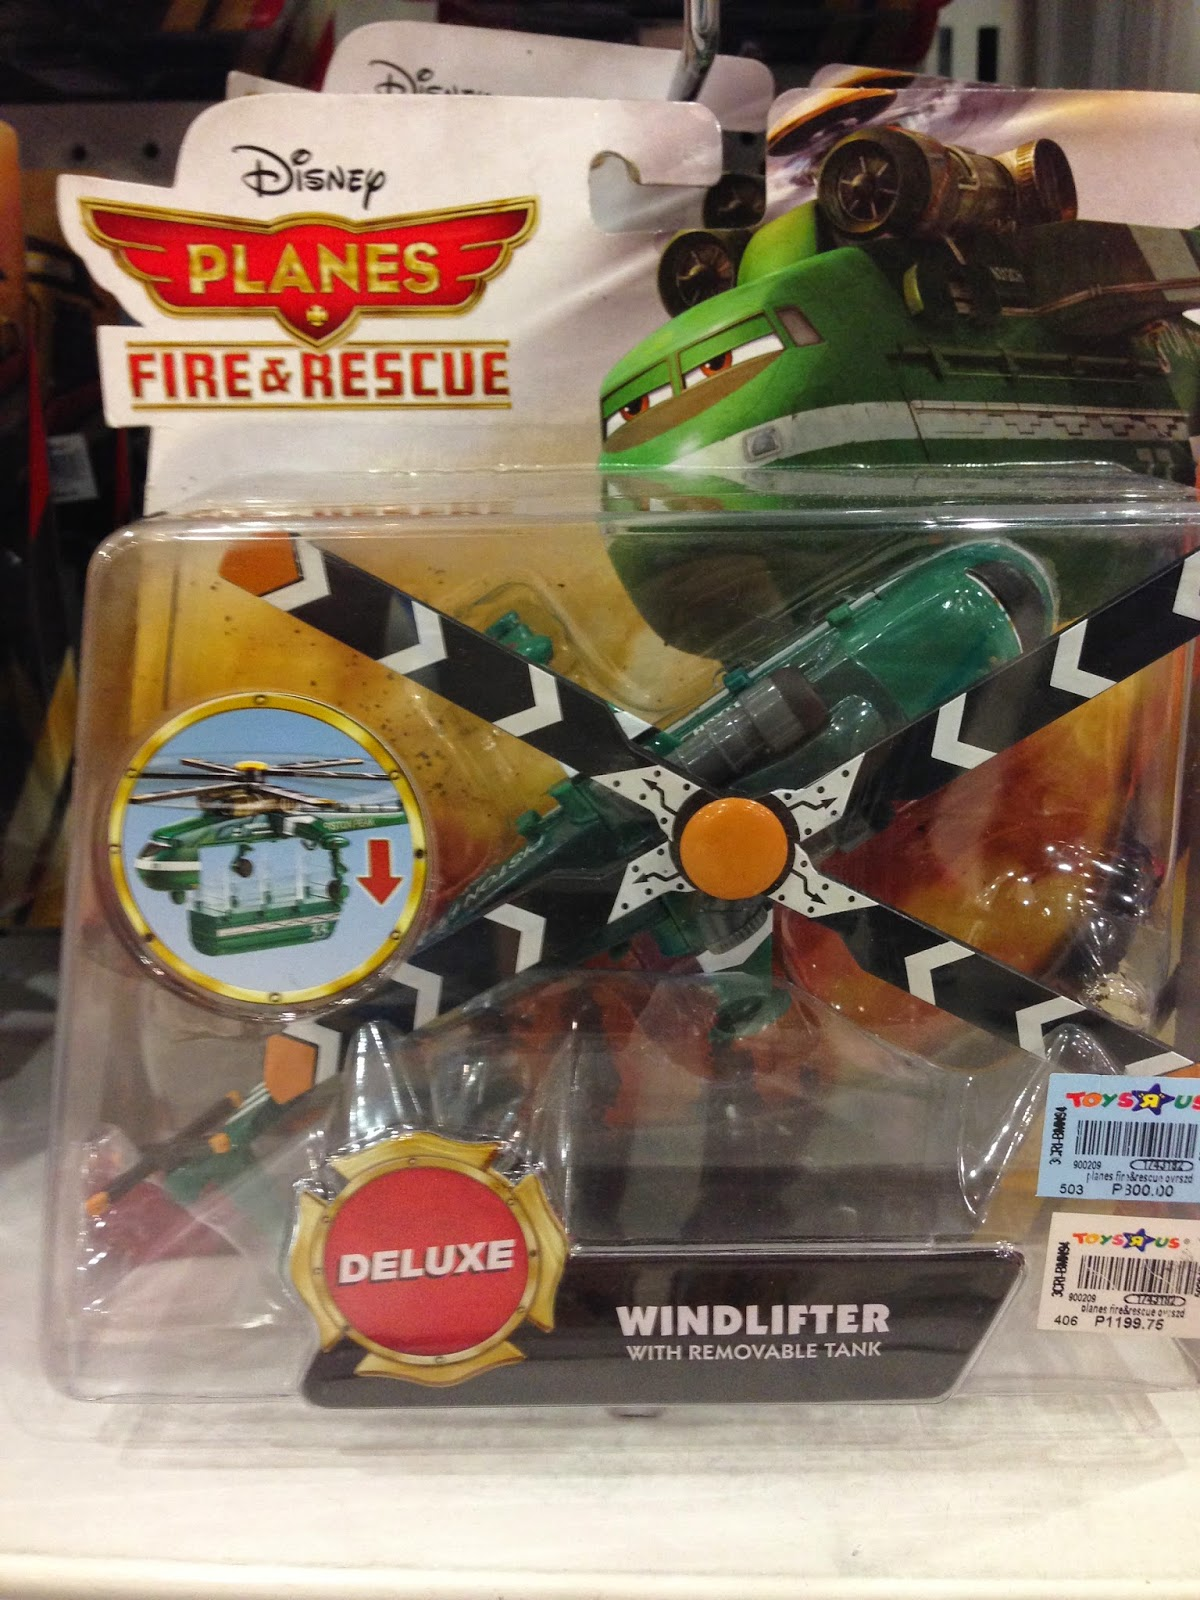 Toy Sale in Manila, Philippines 2015 : Disney Planes Die-Cast Toys on SALE (Windlifter)